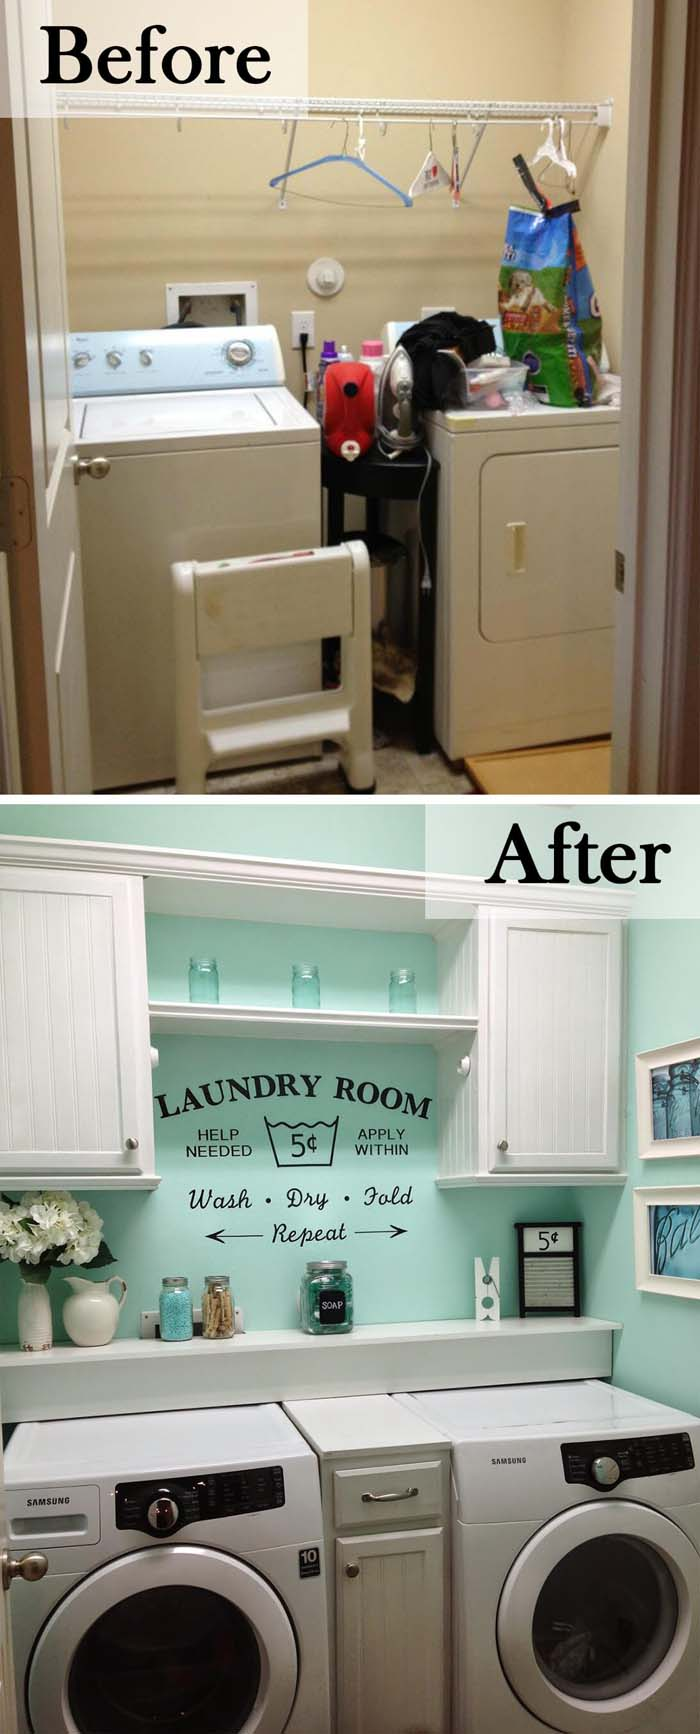 Cabinets and a Pretty Splash of Color #laundryroom #makeover #decorhomeideas